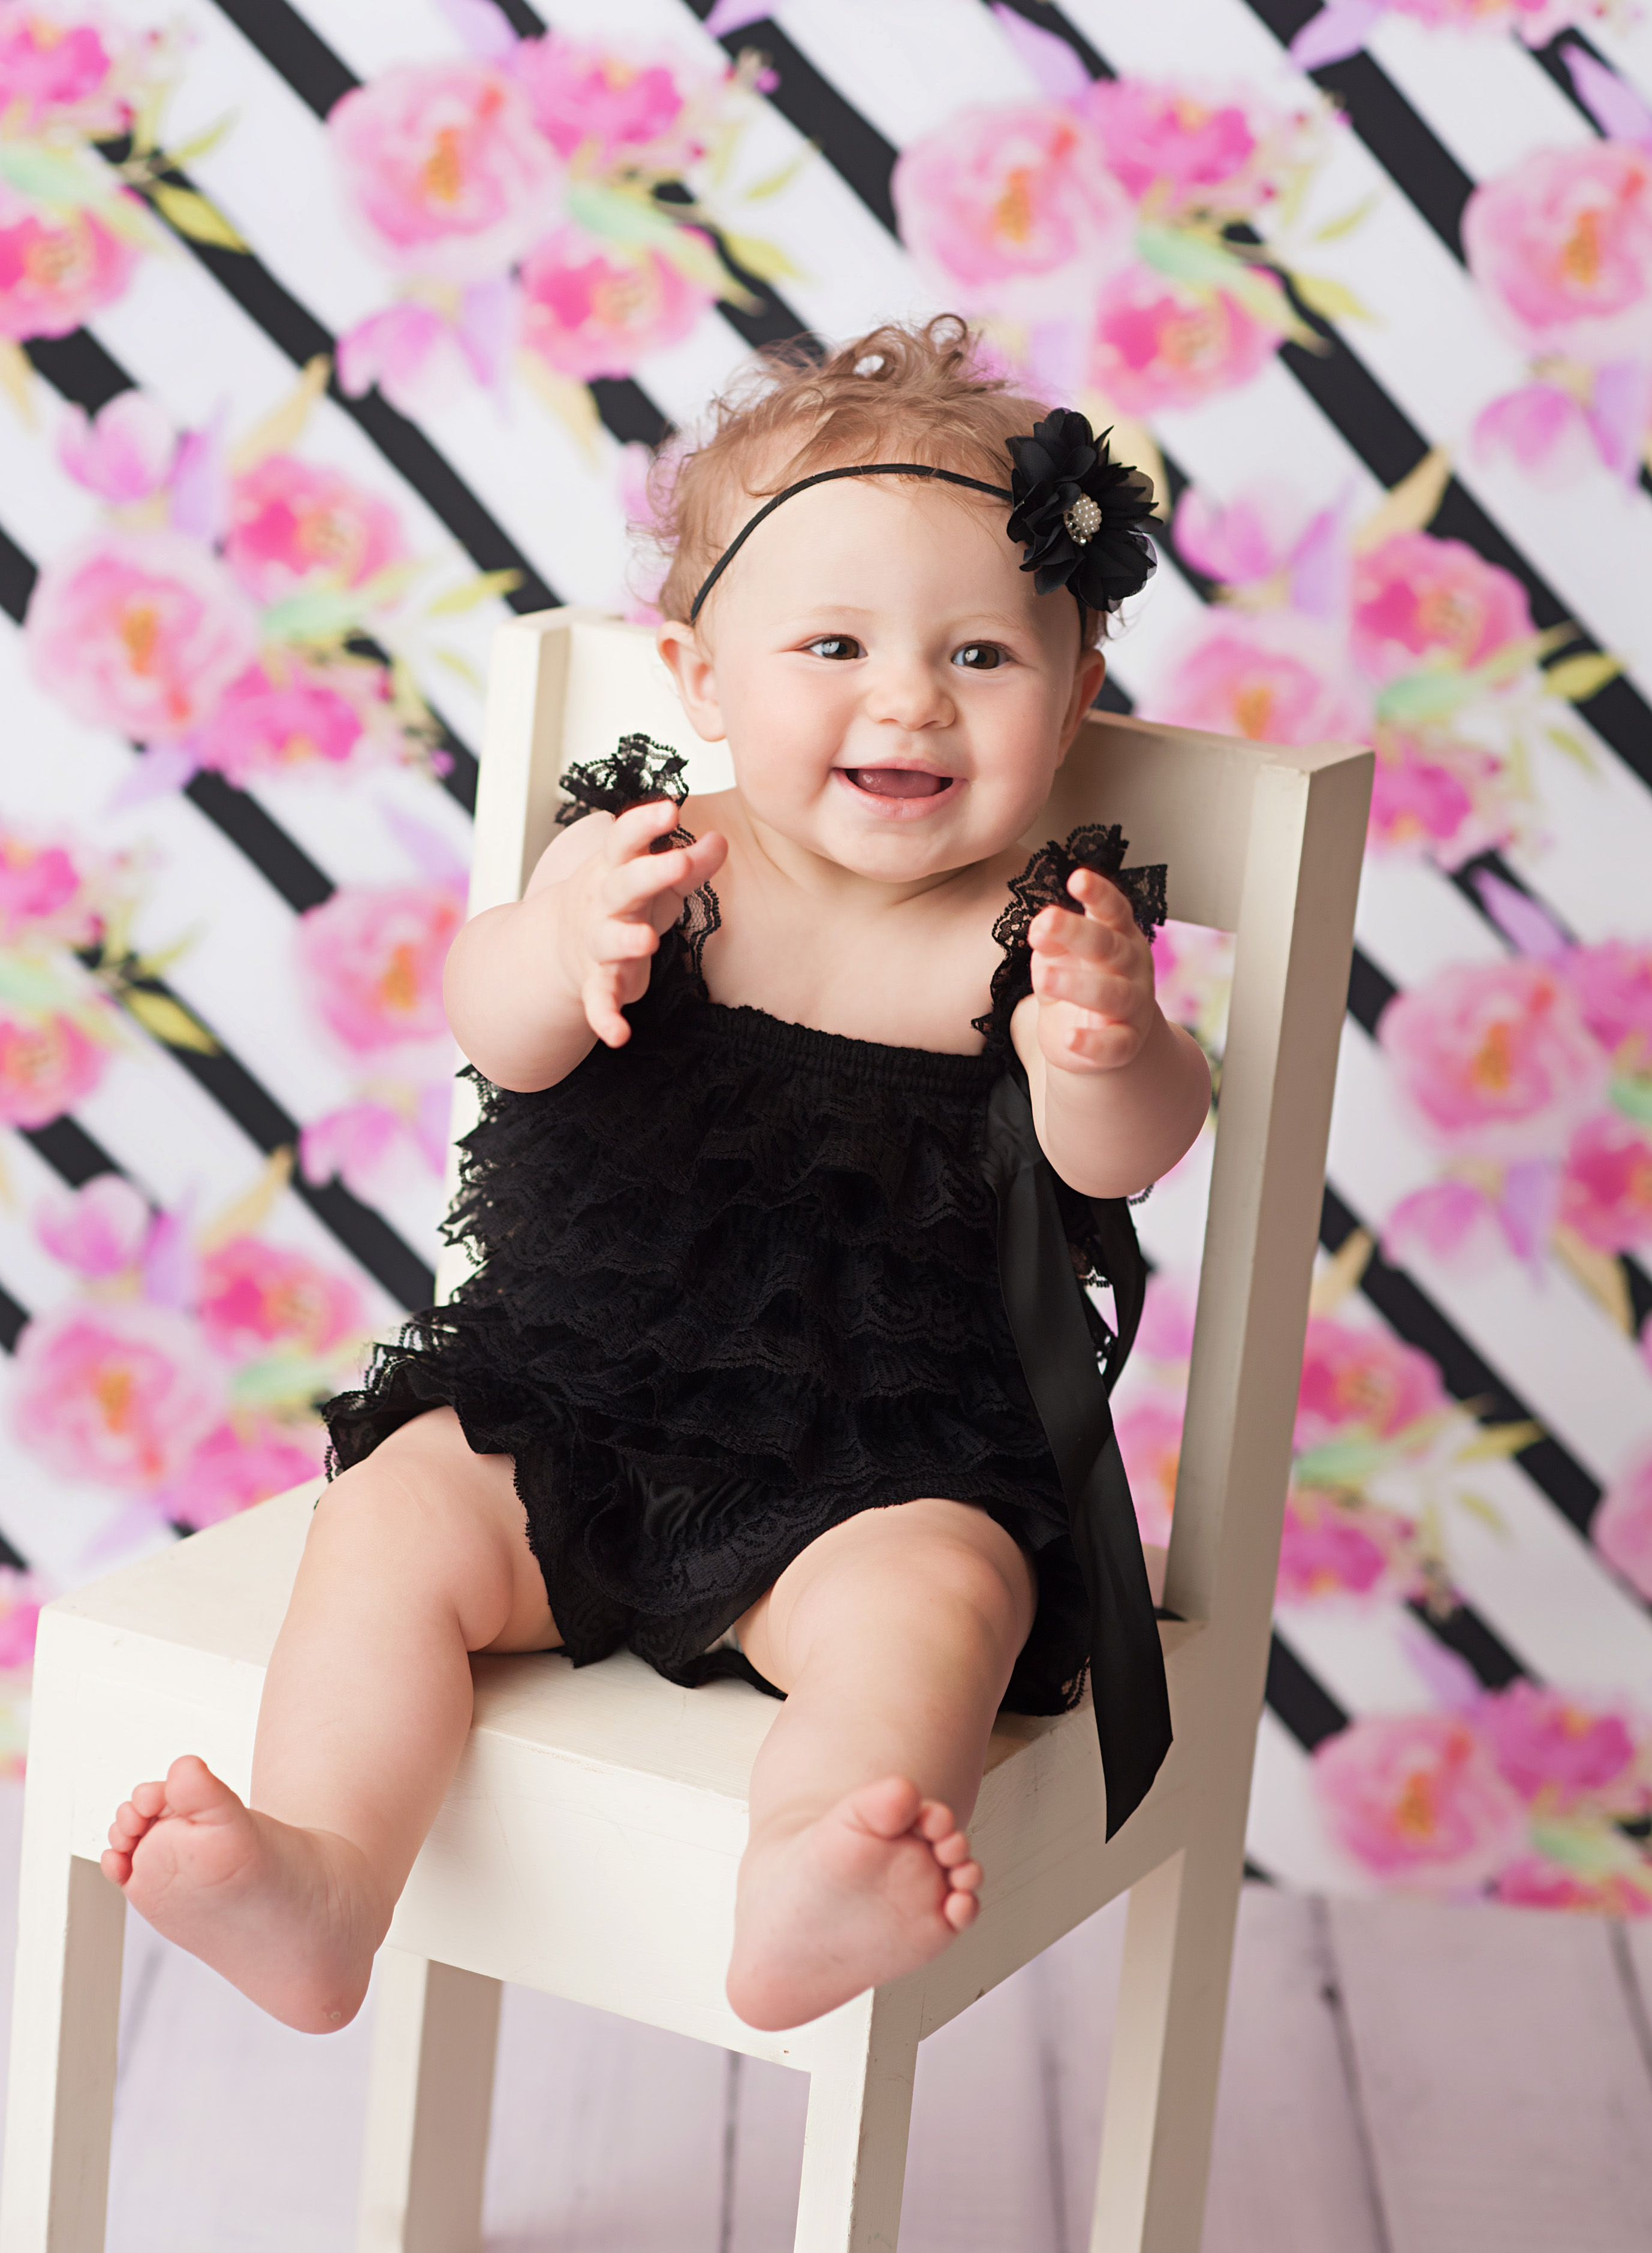 baby on chair in front of floral backdrop